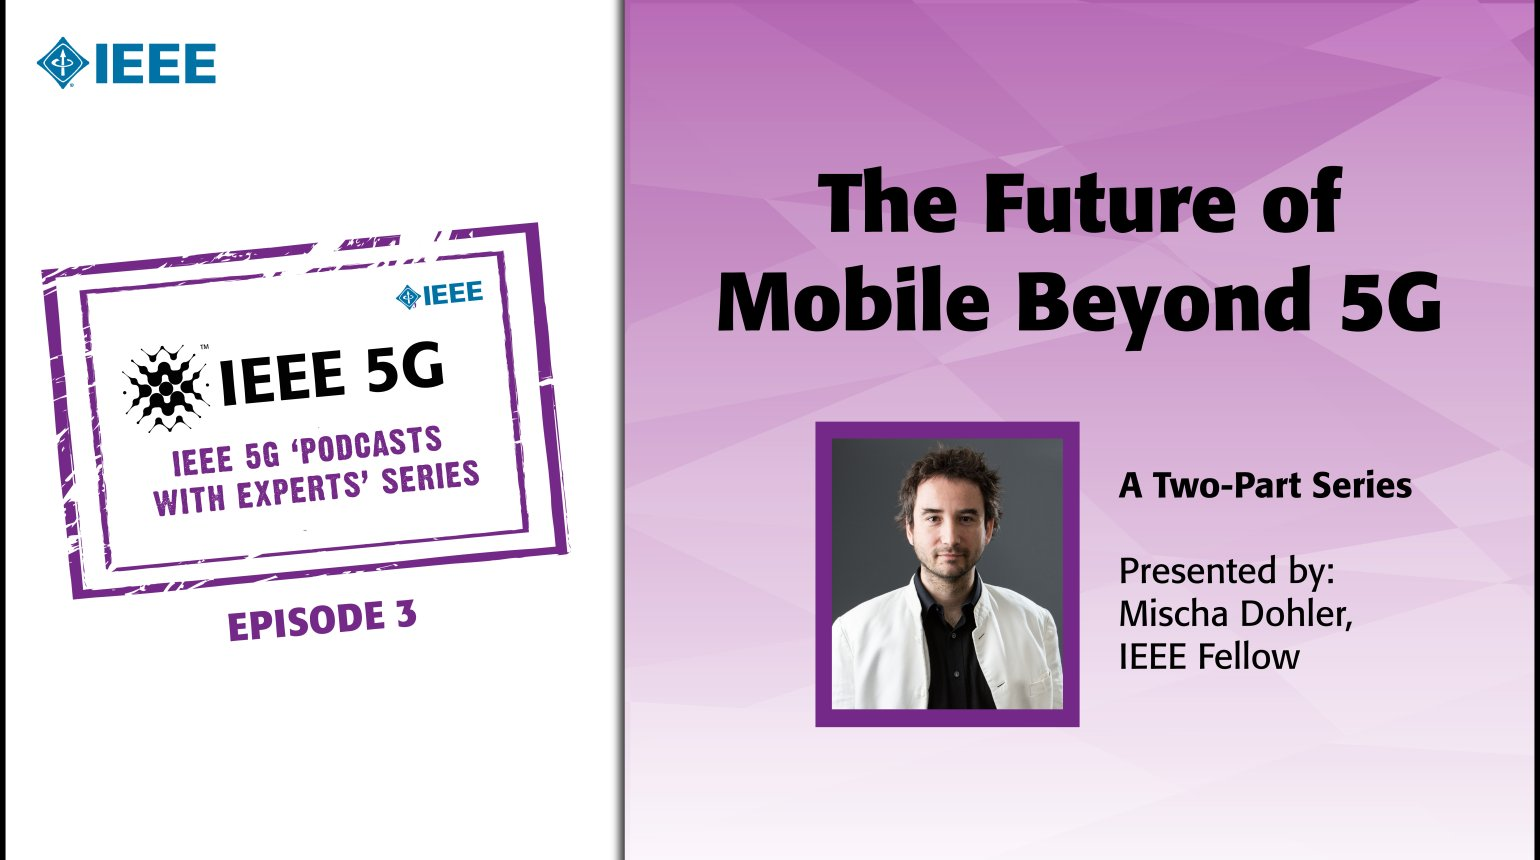 IEEE 5G Podcast with the Experts: The Future of Mobile Beyond 5G: Part 1 - Mischa Dohler